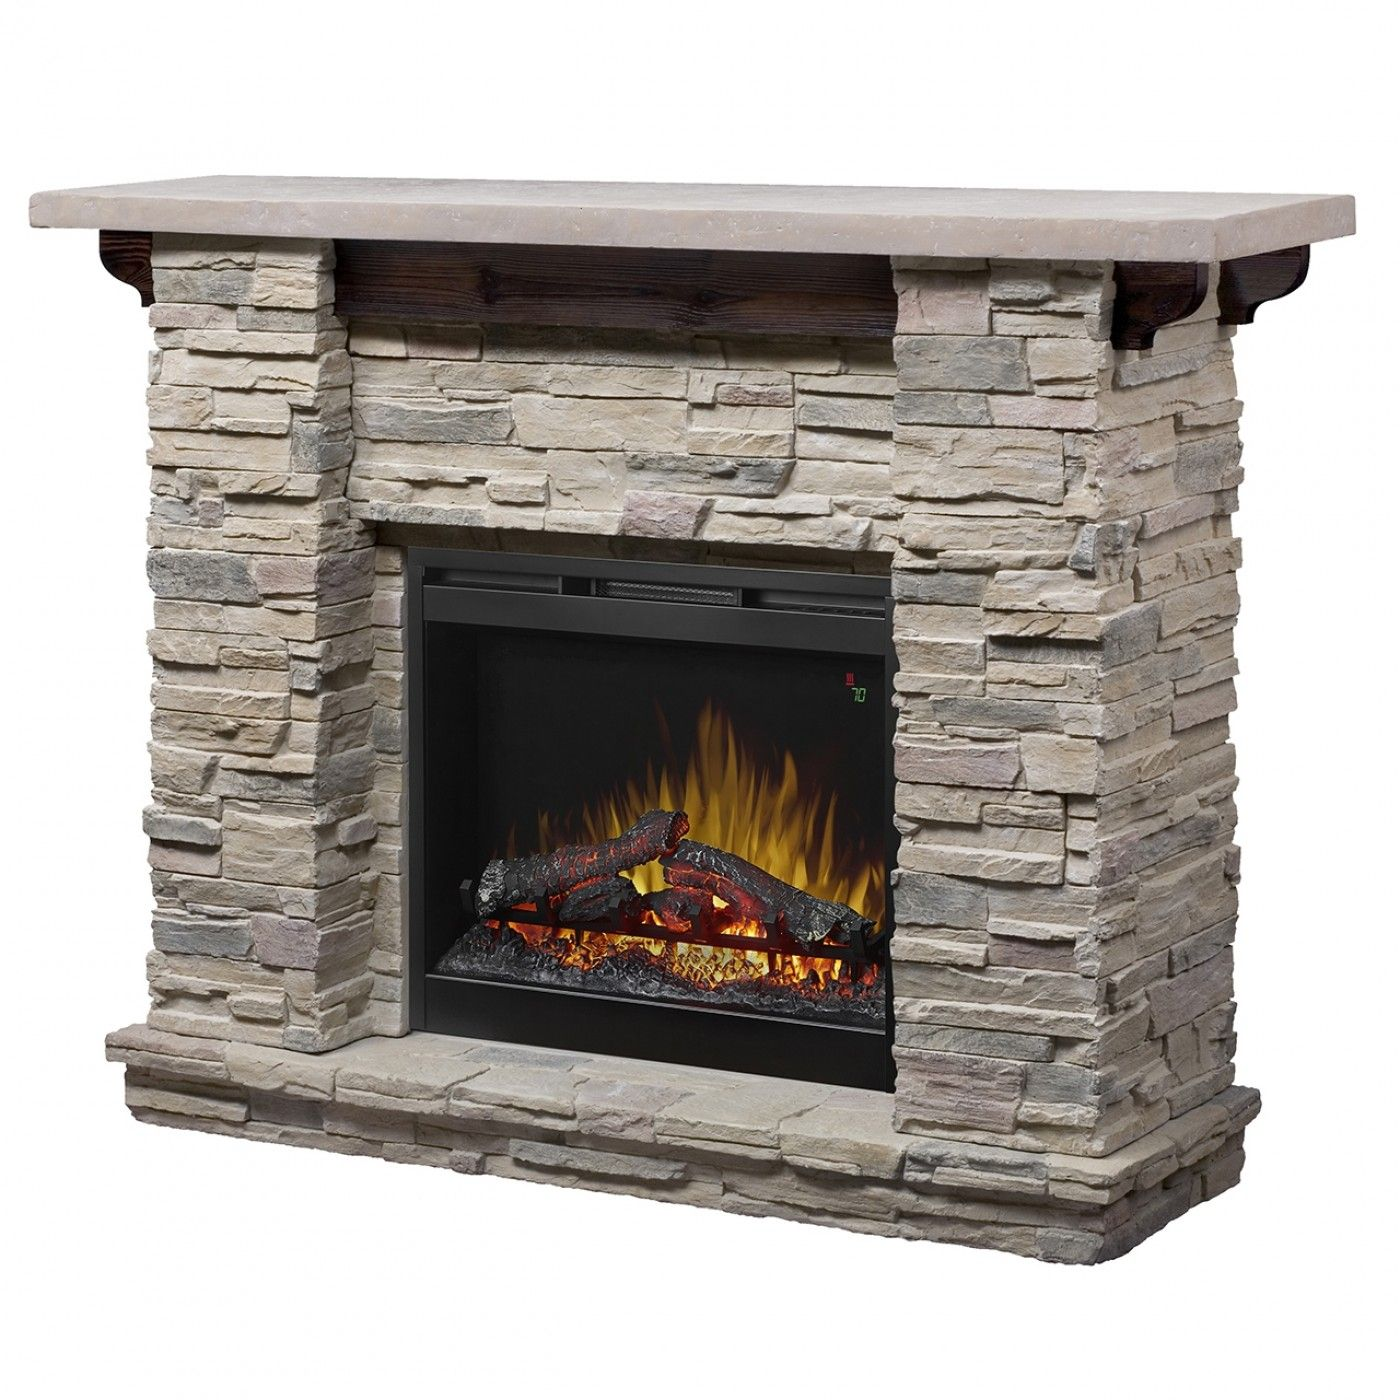 Dimplex Featherstone Man Made Stone Mantel Electric Fireplace Gds26l5 1152lr Goedekers Com Stone Electric Fireplace Electric Fireplace Fireplace